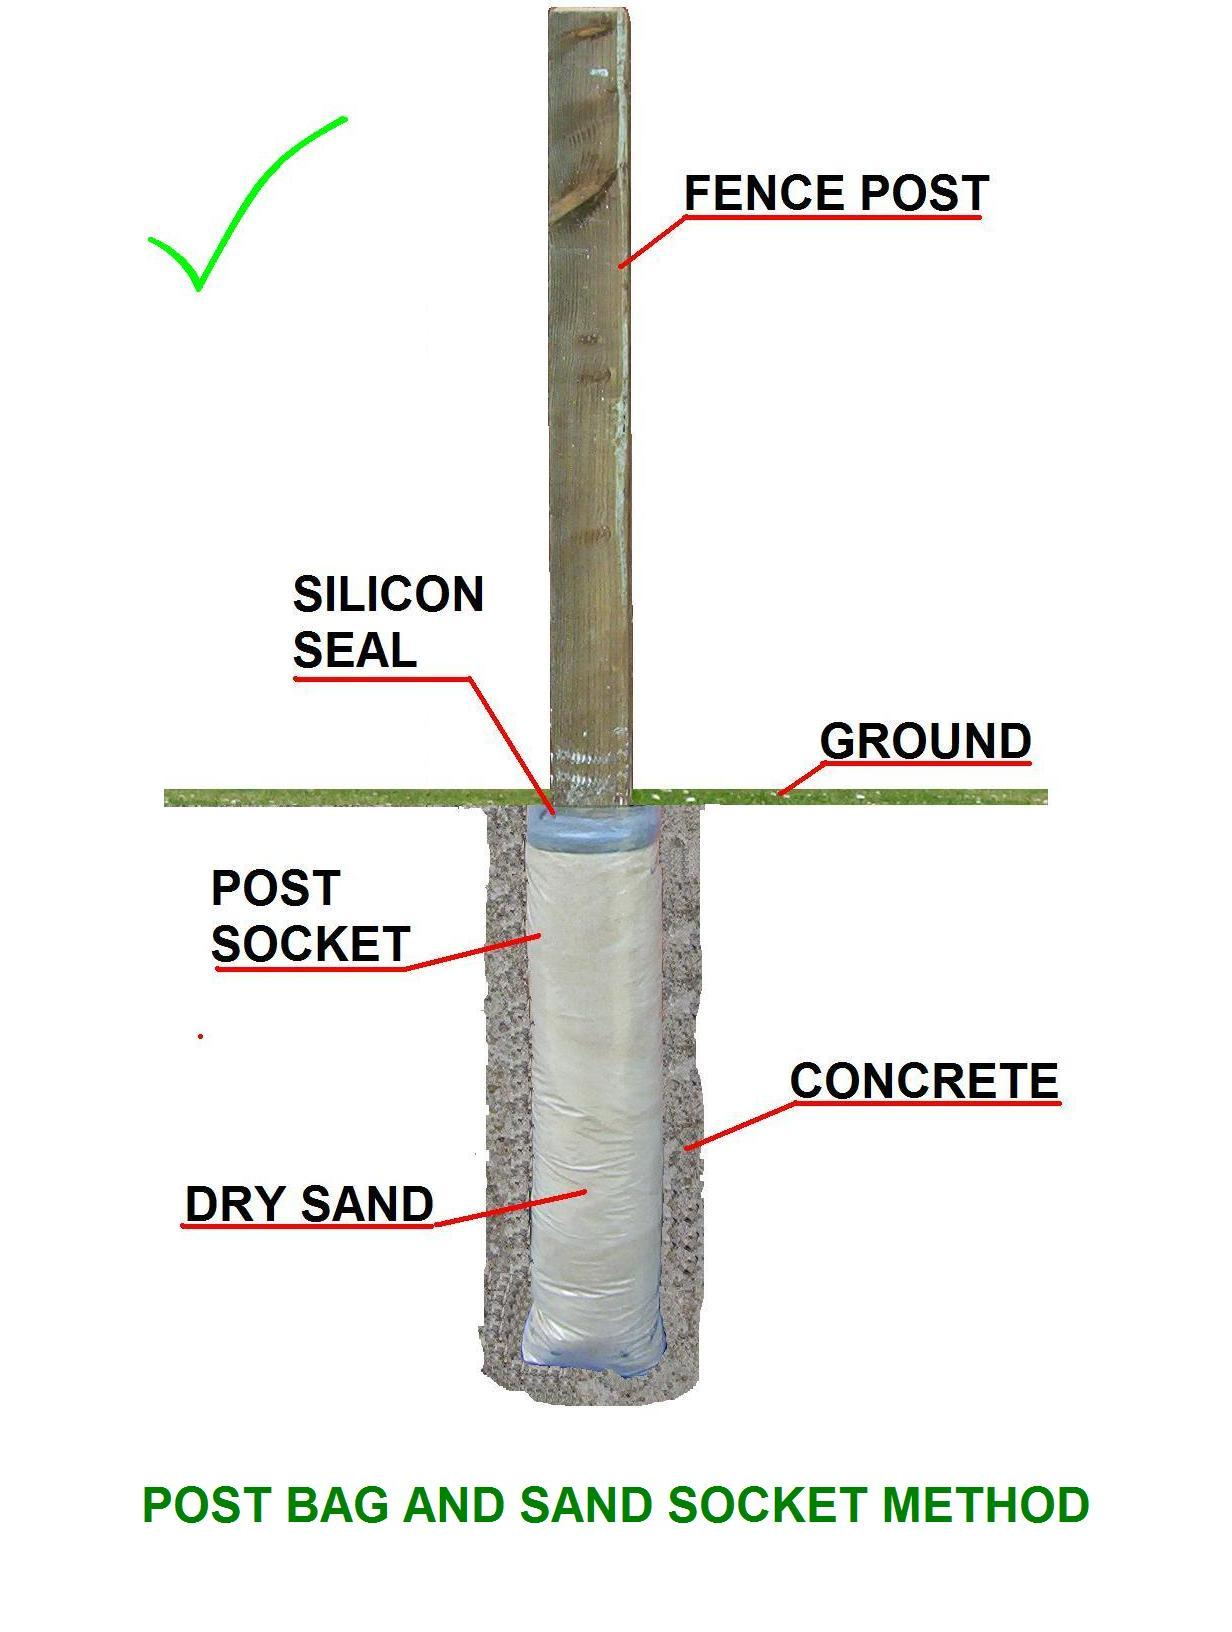 How to Fix and Then Extract a Fence Post With Ease: 12 Steps